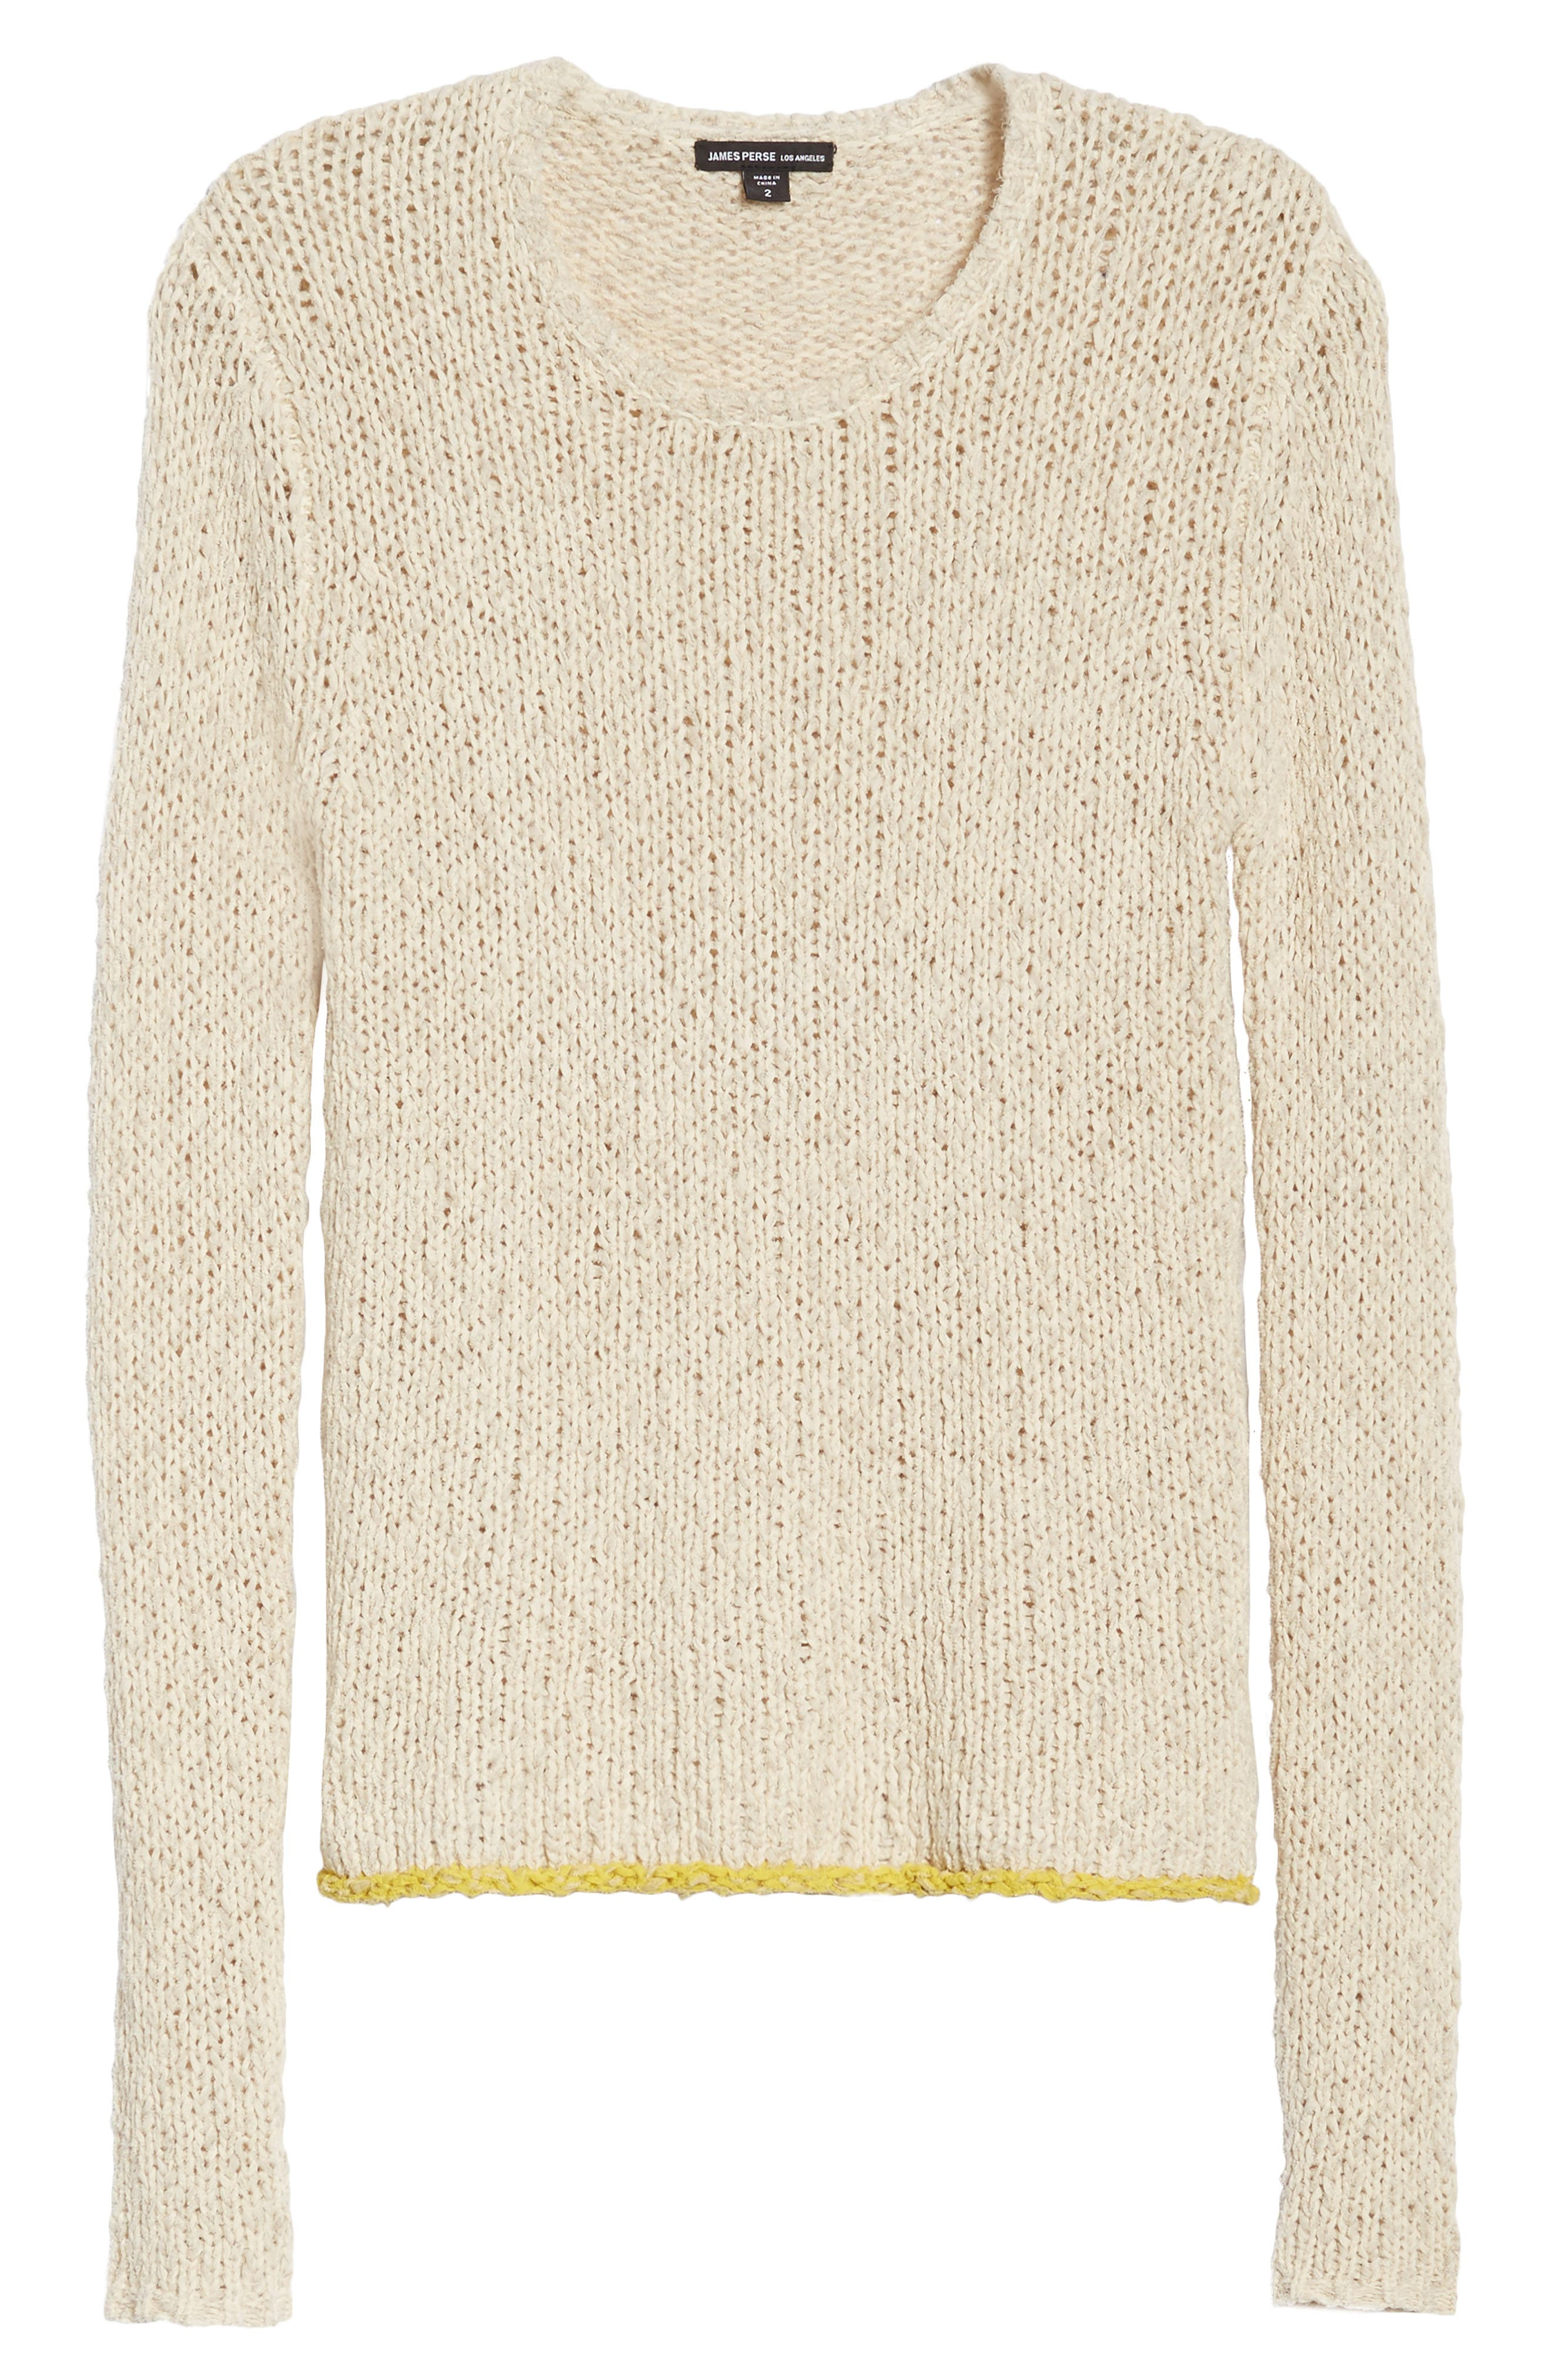 Open Stitch Sweater,                             Alternate thumbnail 6, color,                             167